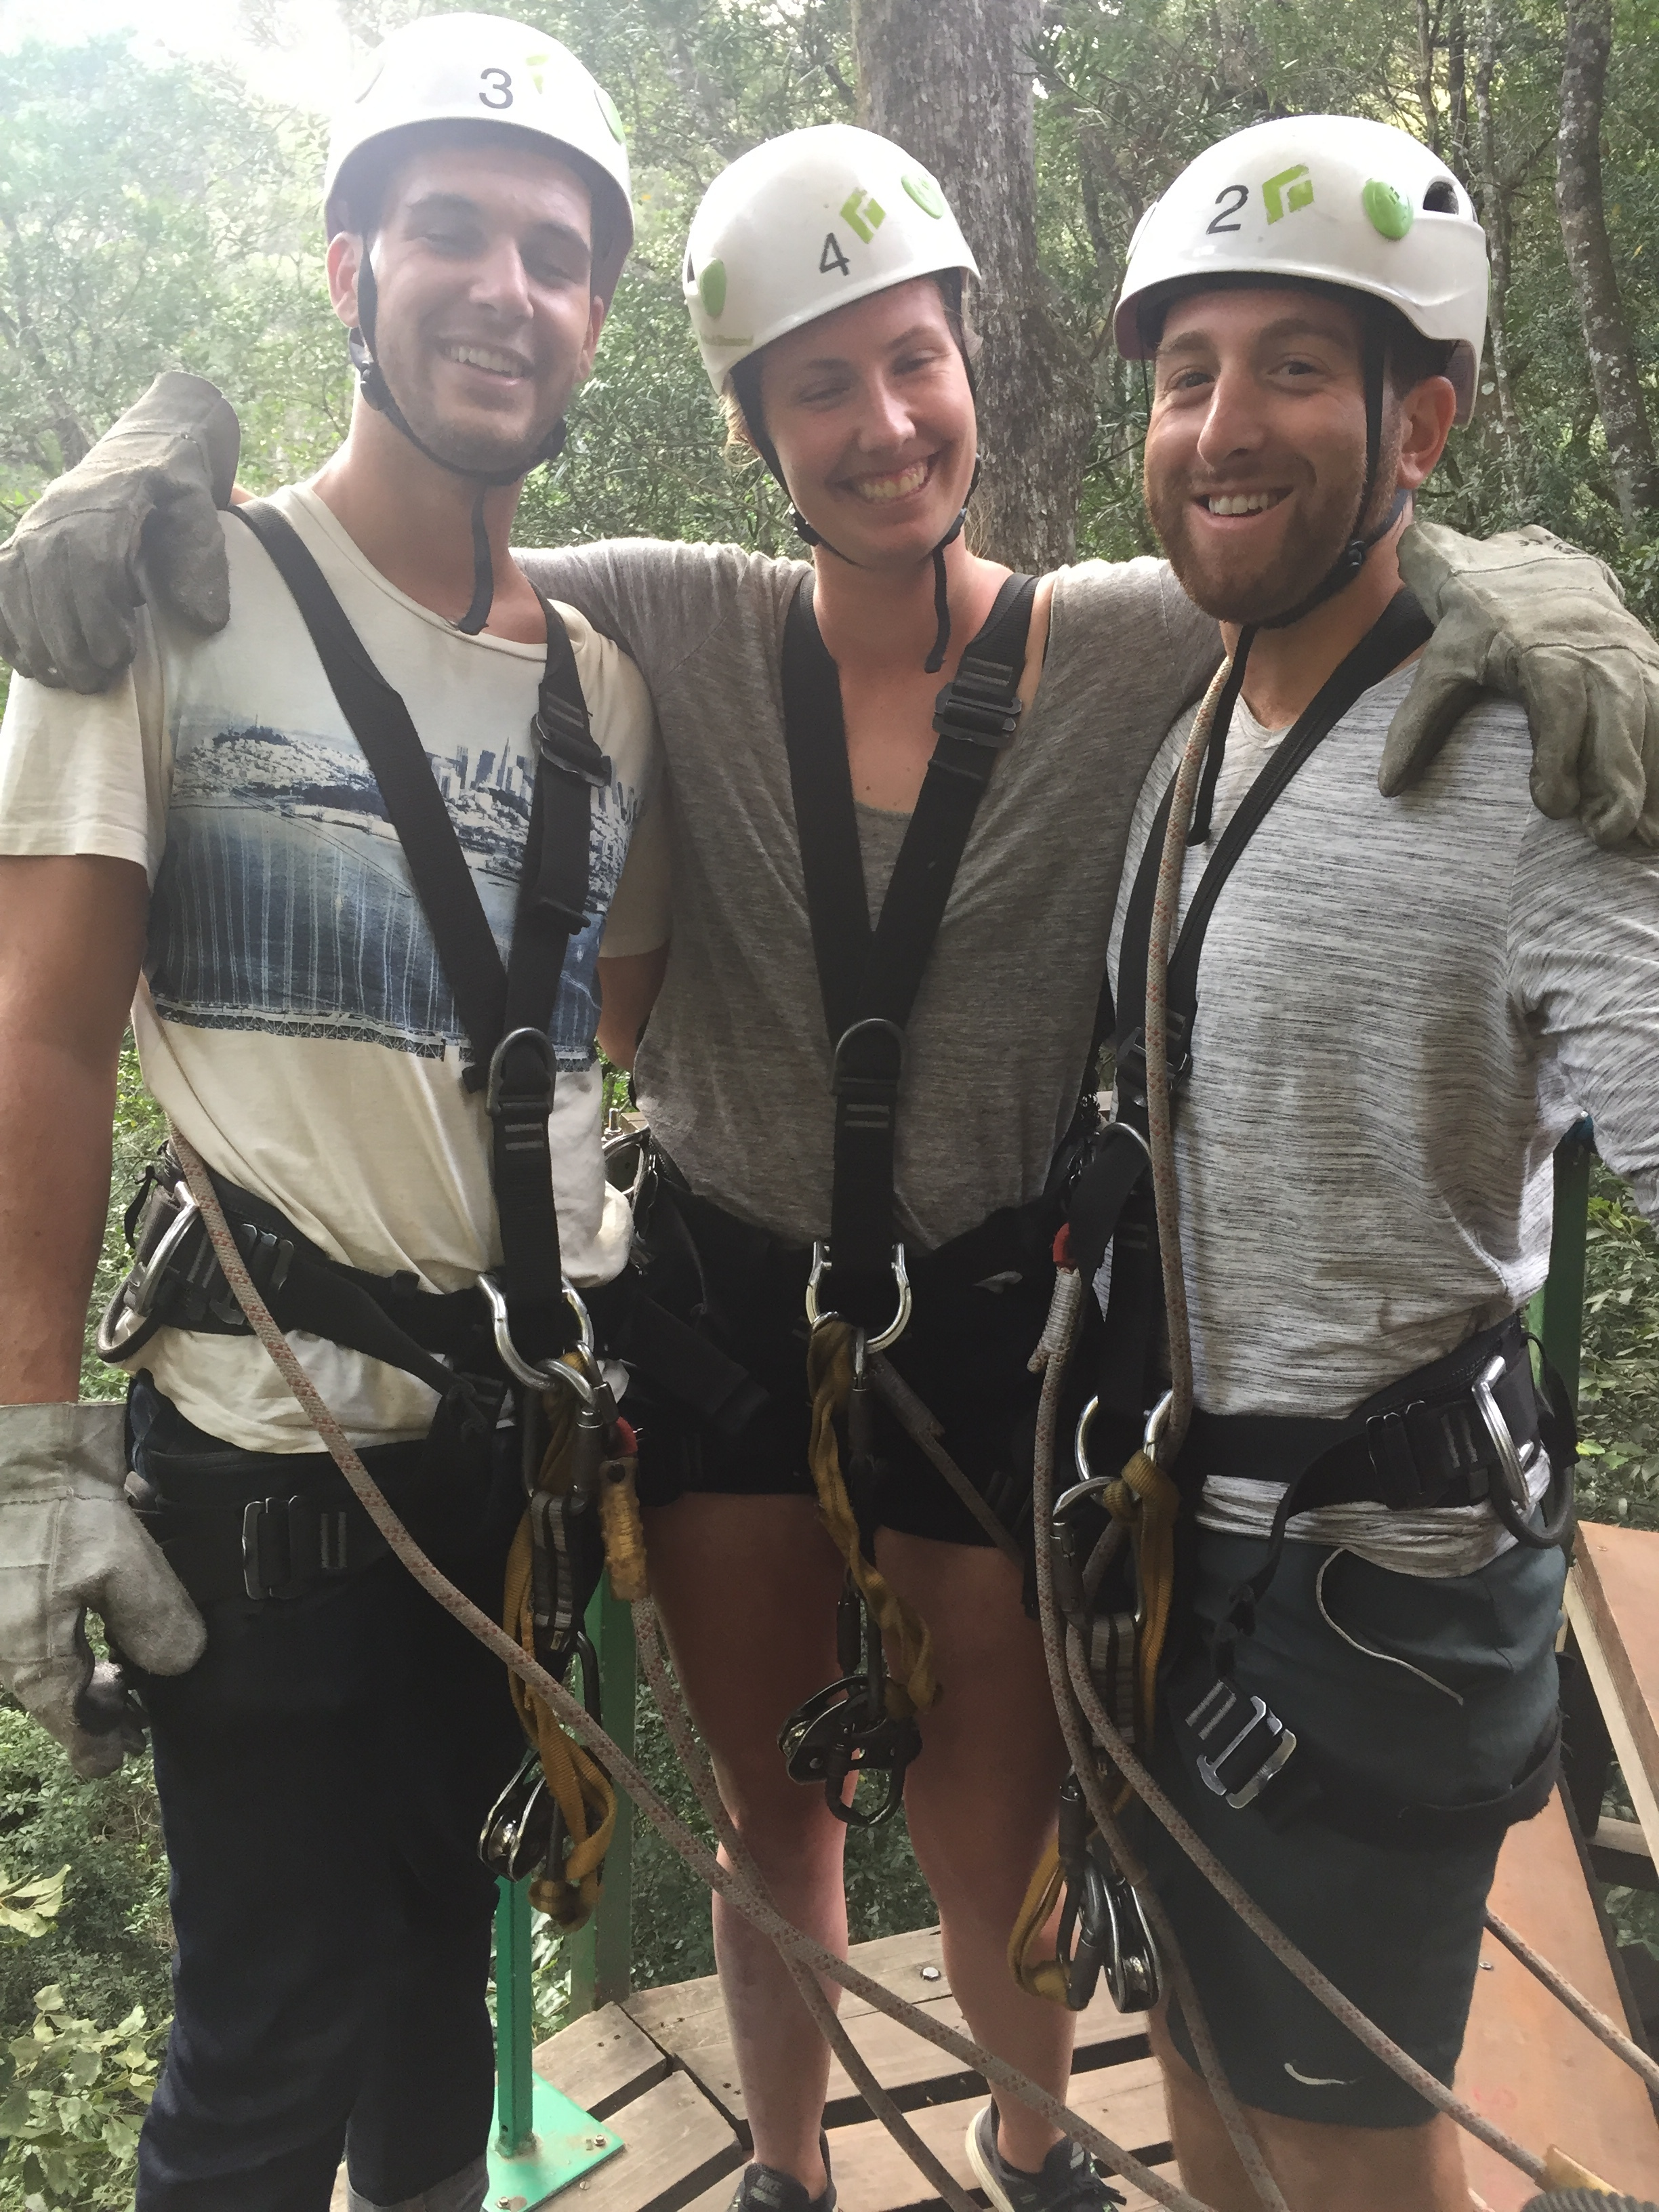 Catching some zipline action by Storms River.